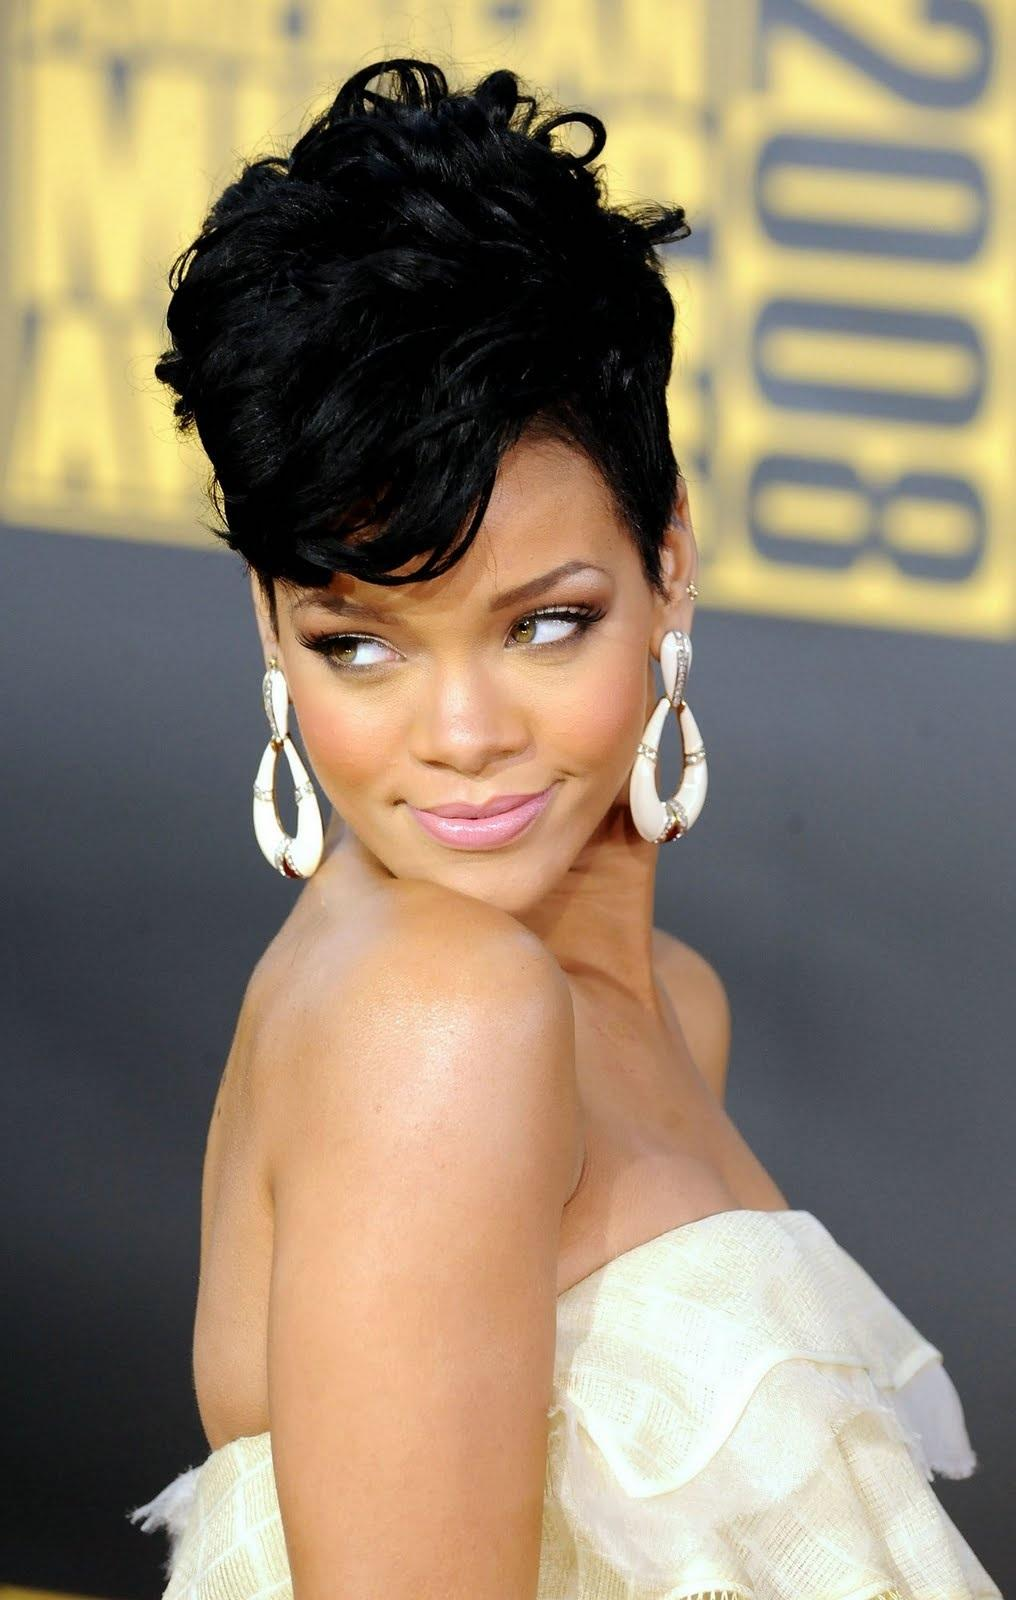 Enjoyable Top 17 Of The Best Short Hairstyles For Black Women 2015 Hairstyles For Men Maxibearus